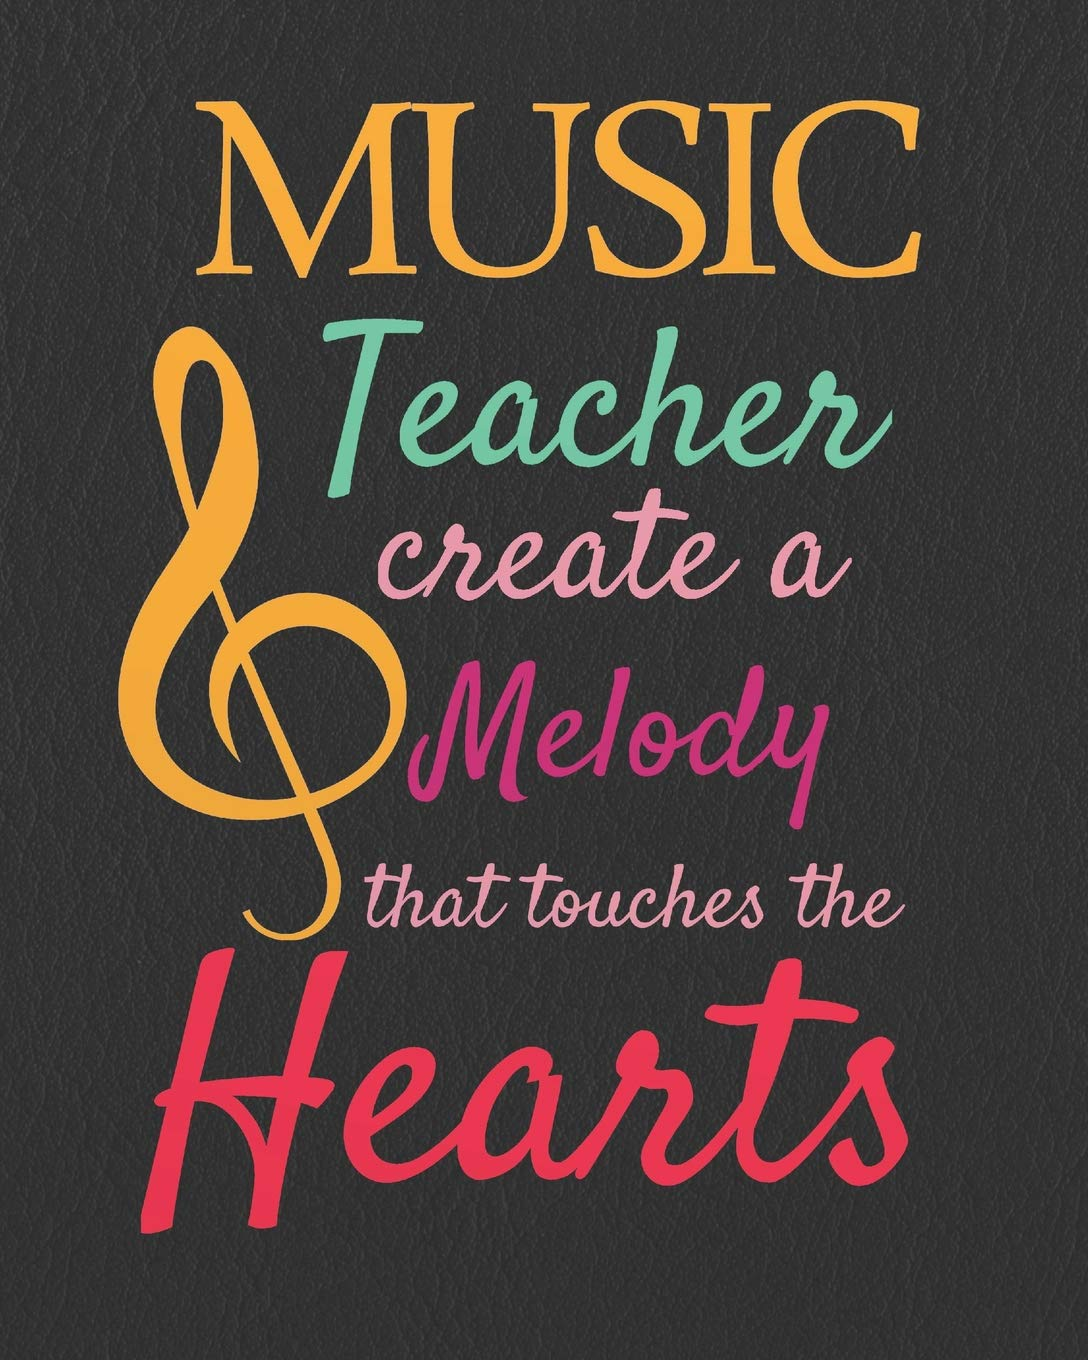 Music teacher create a melody that touches the hearts: Music